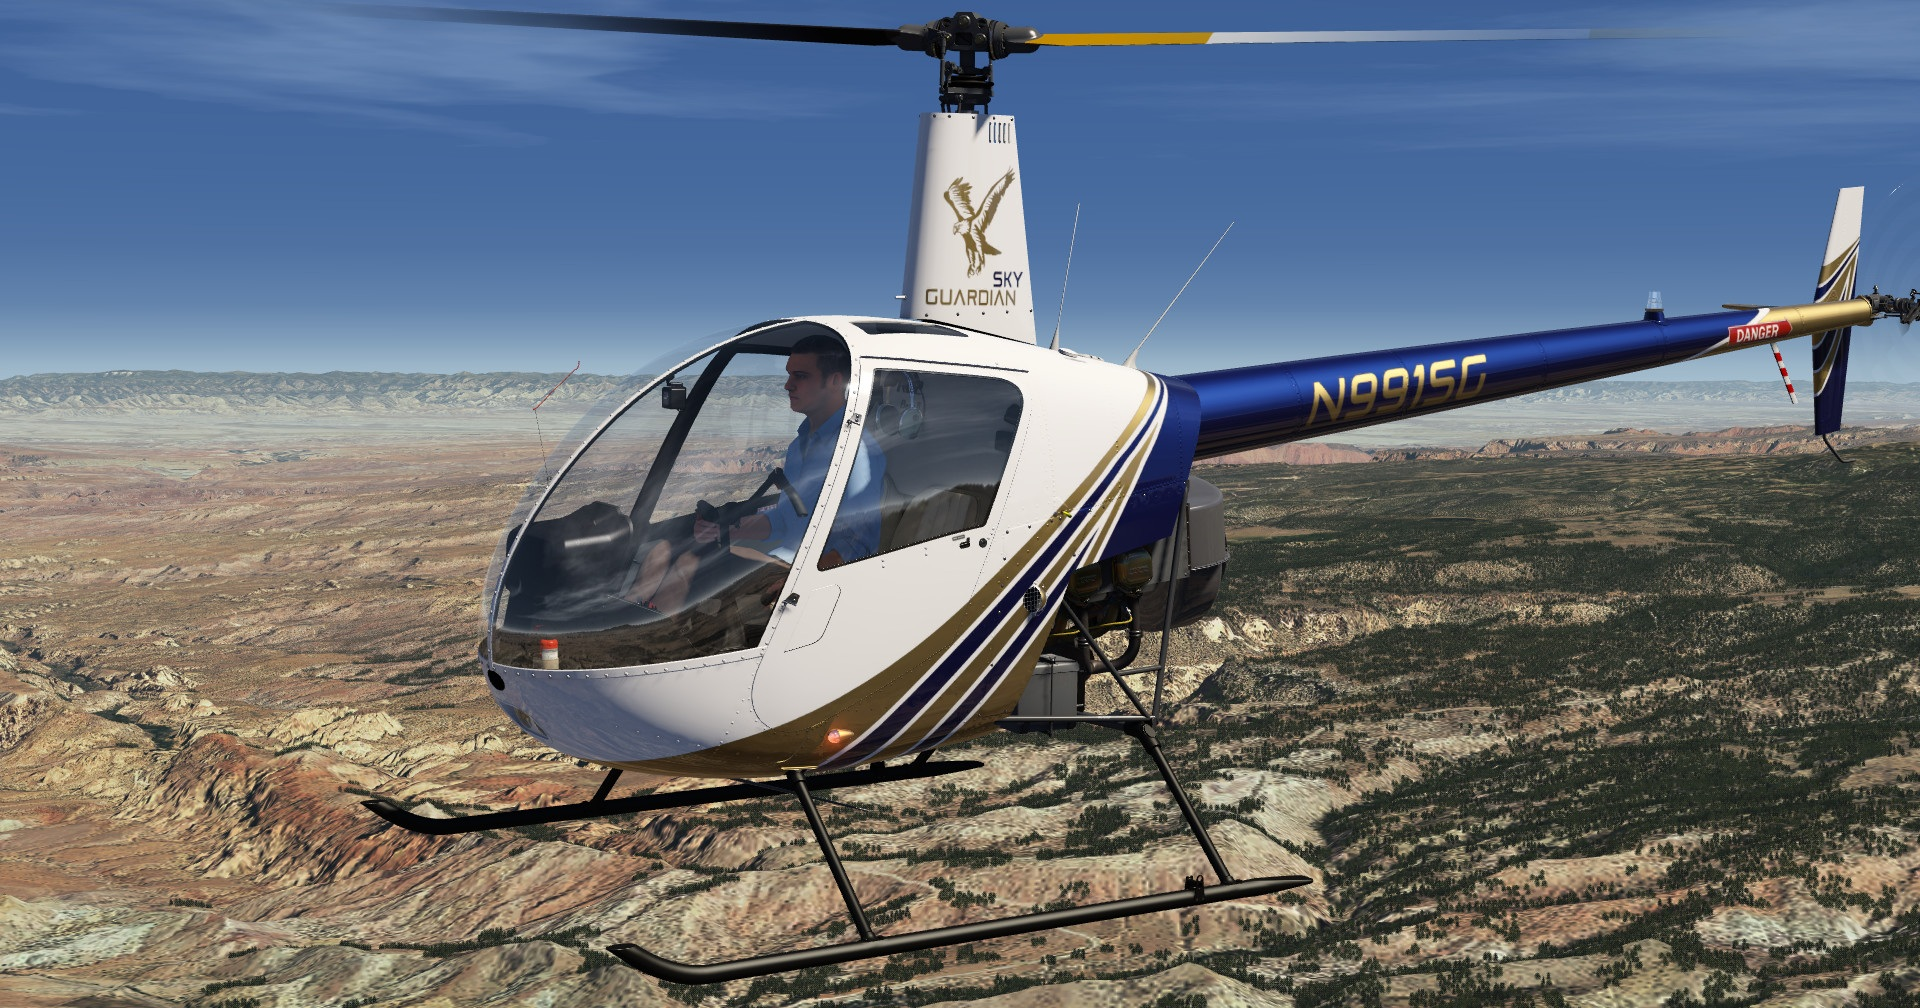 The Robinson R22: New standard aircraft for the Aerofly FS 2 Simulator